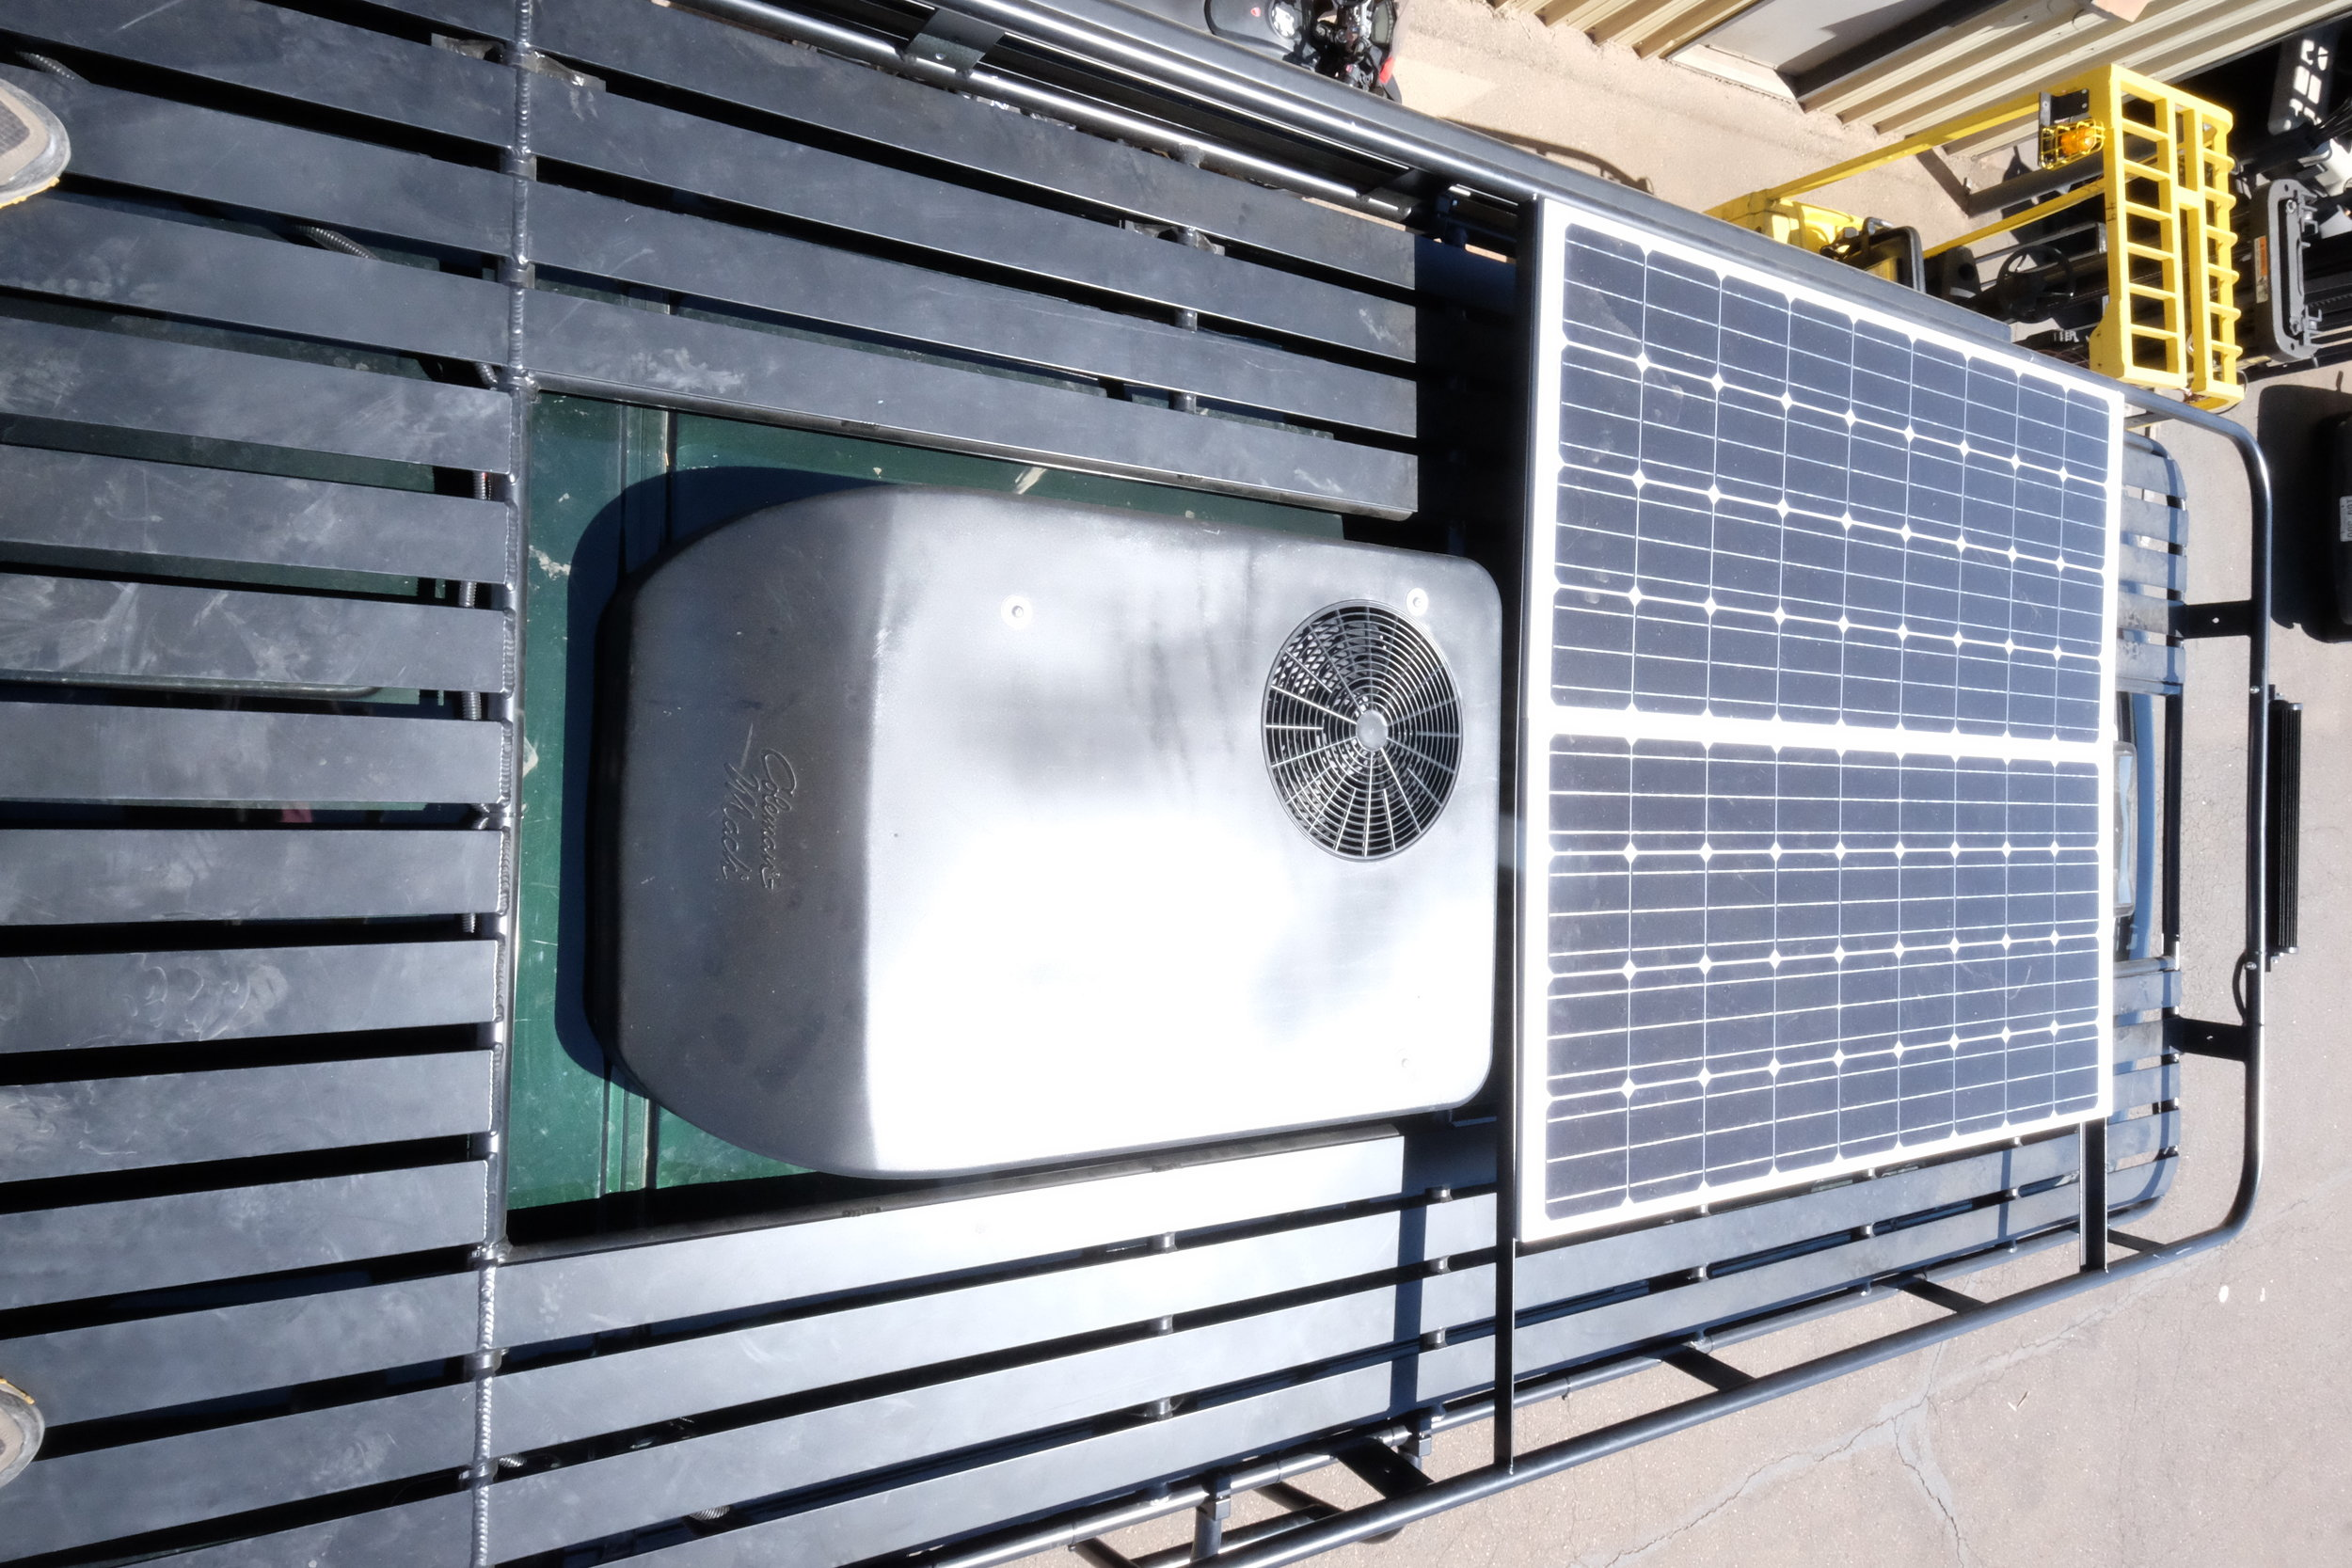 The Aluminess roof rack was designed to account for two large solar panels, the Coleman Mach 8, as well as a Maxxair vent fan. Although Aluminess products come with a heavy lead time, they are extremely tough looking and very functional.